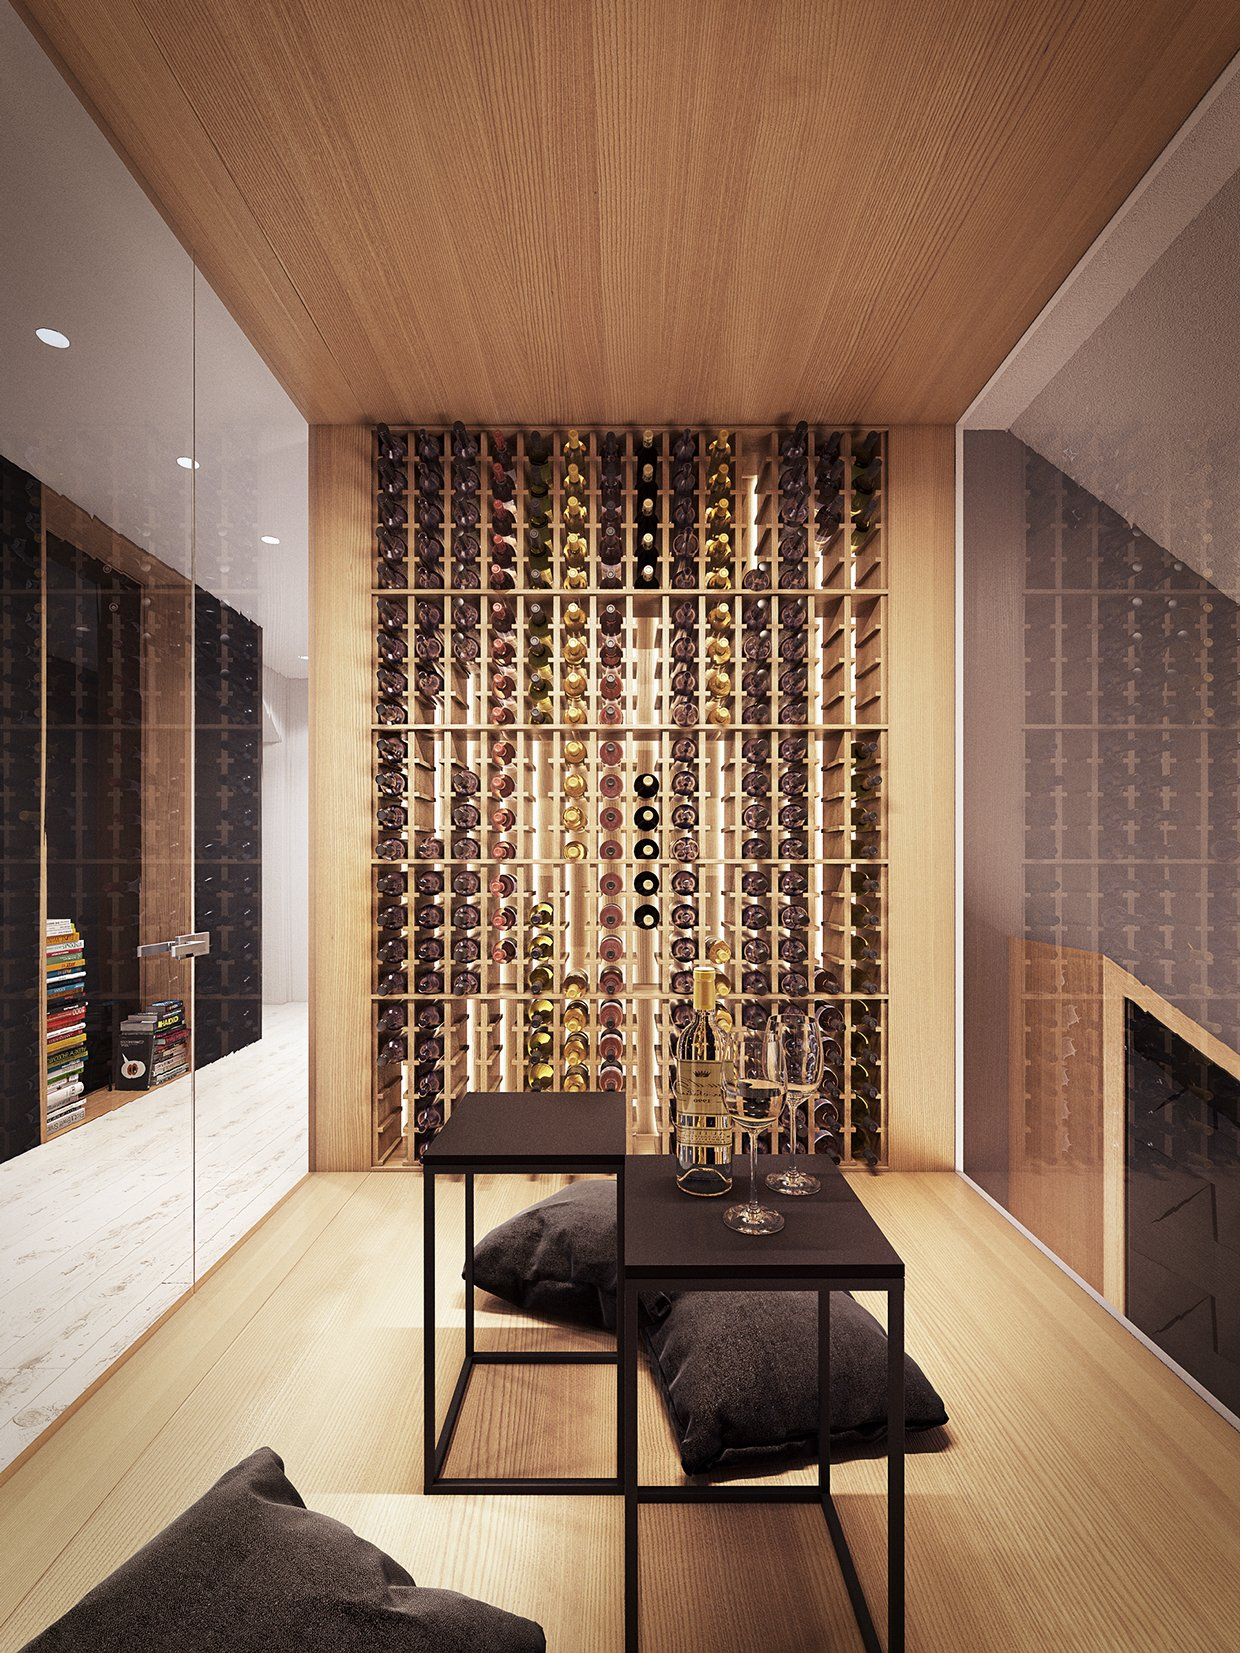 Wine cellar design interior design ideas for Architecture maison design